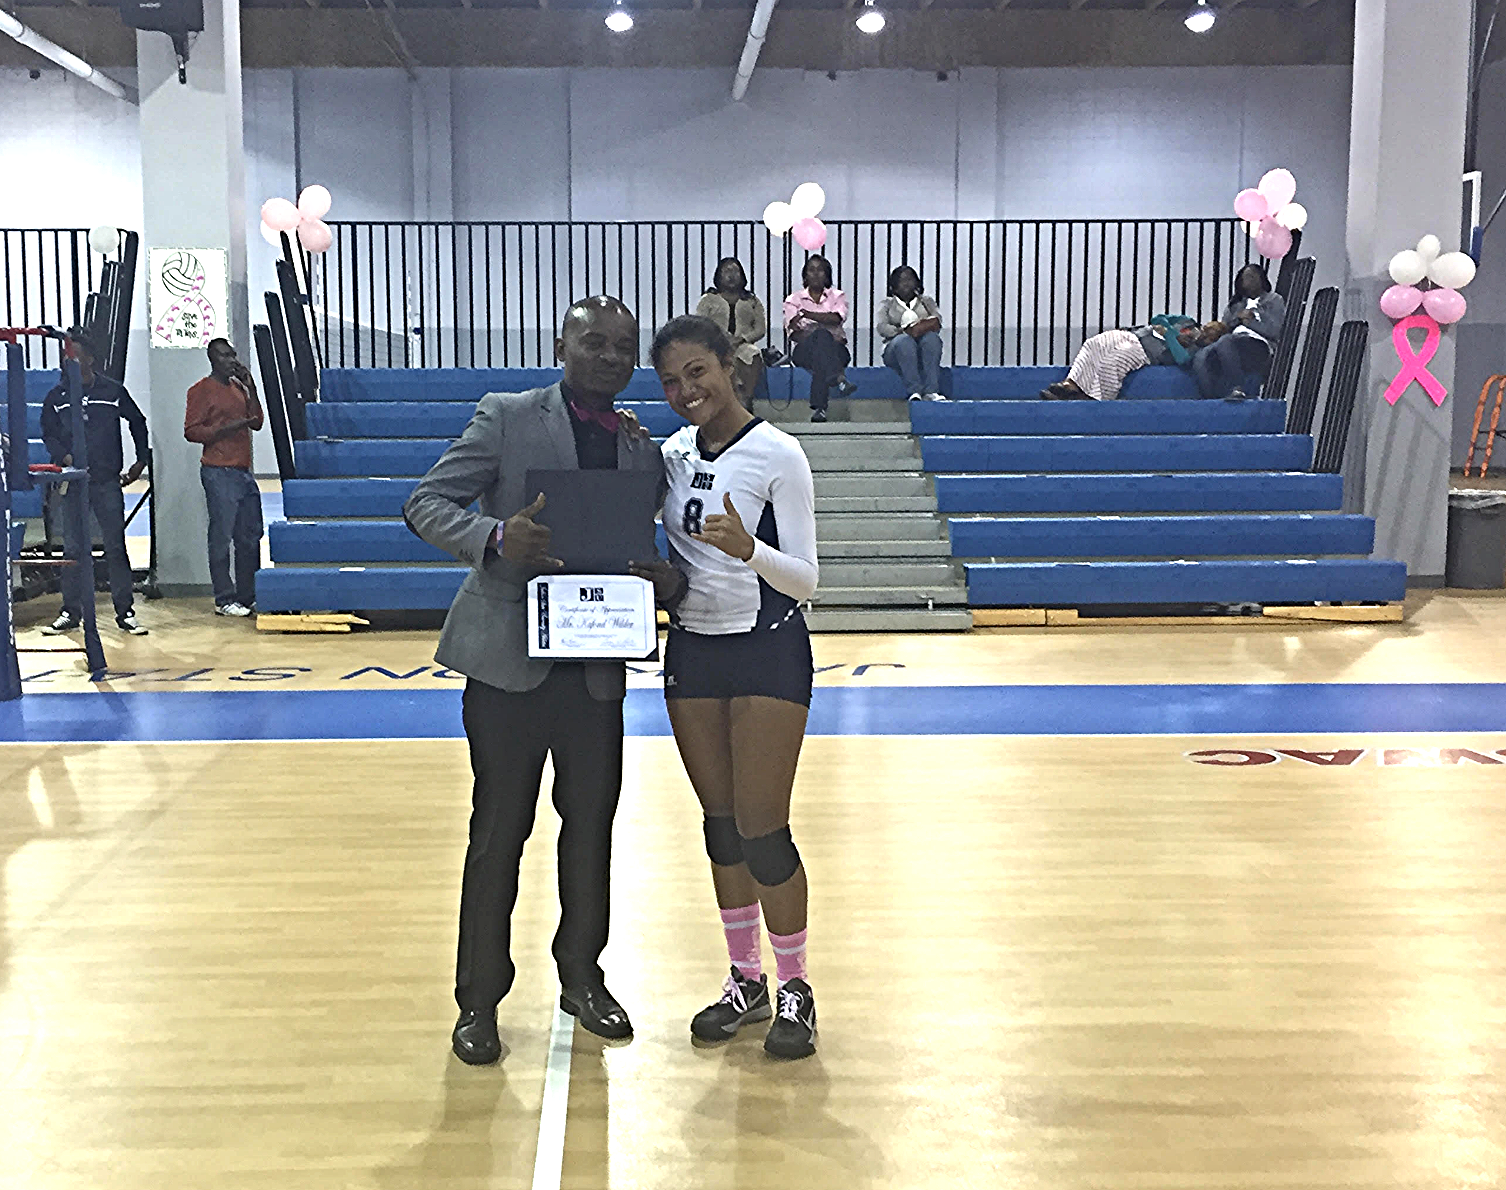 Professor of the Game - 10/20/15